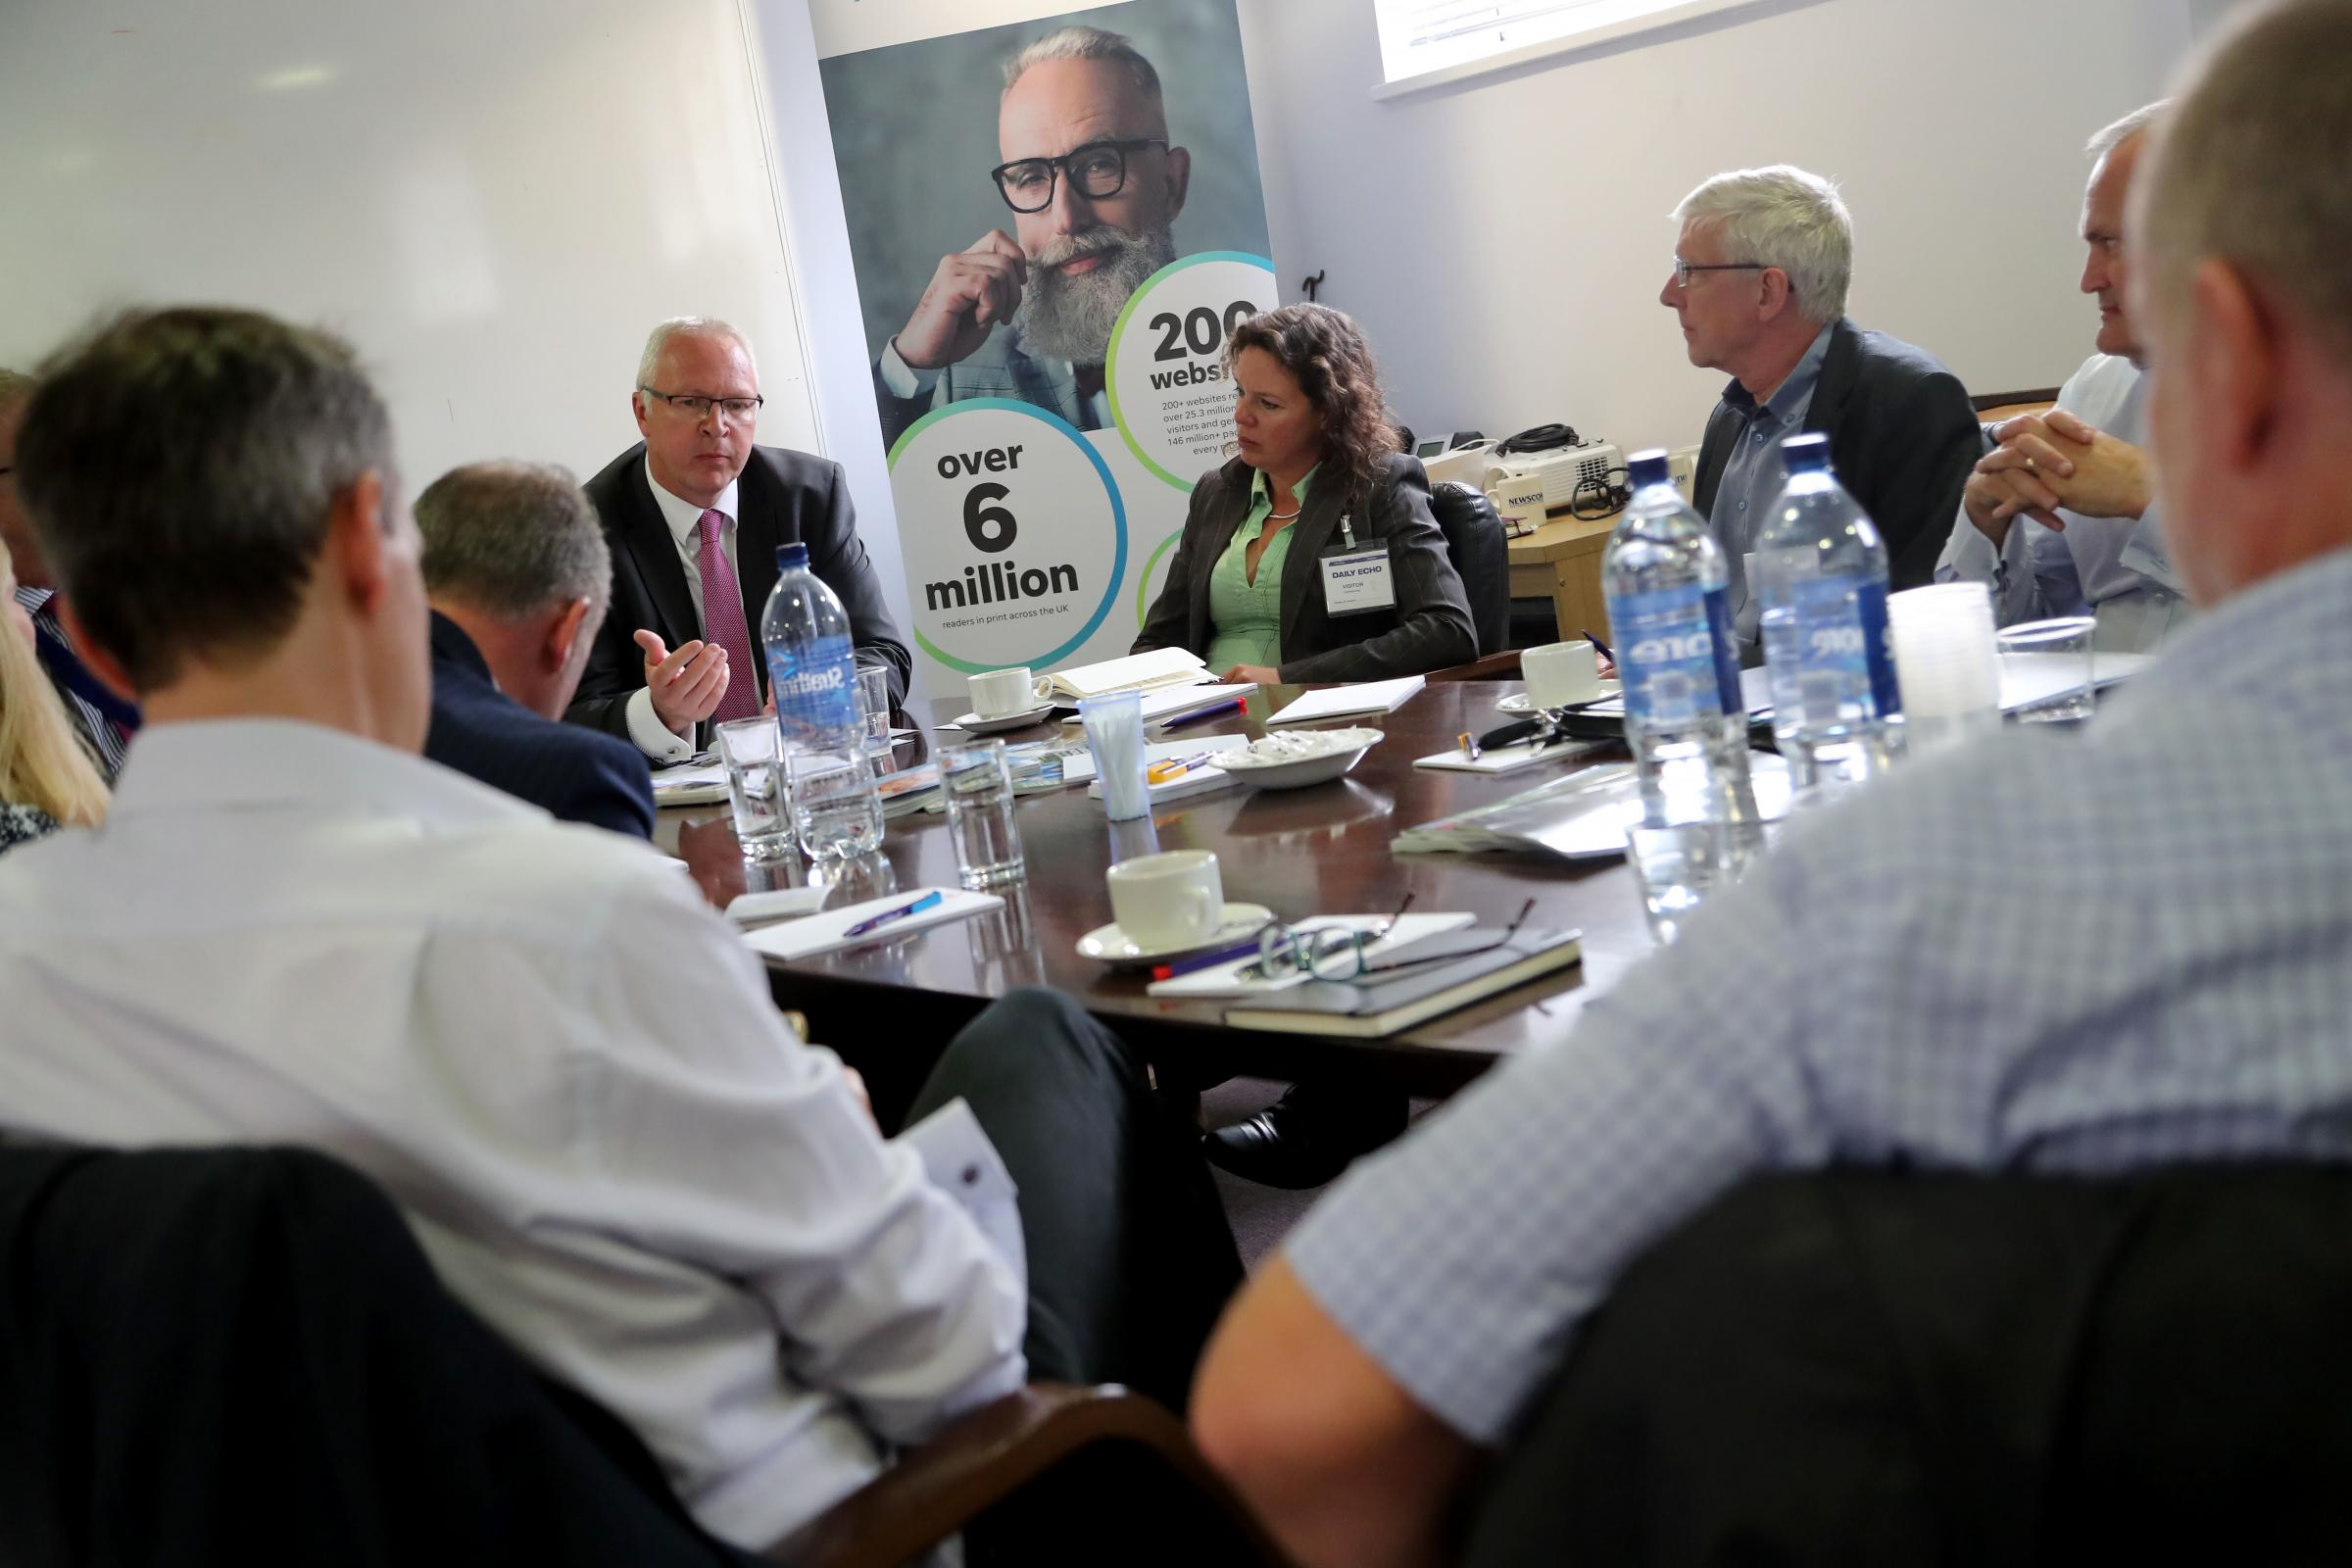 Dorset SMEs are focus of NatWest round table meeting